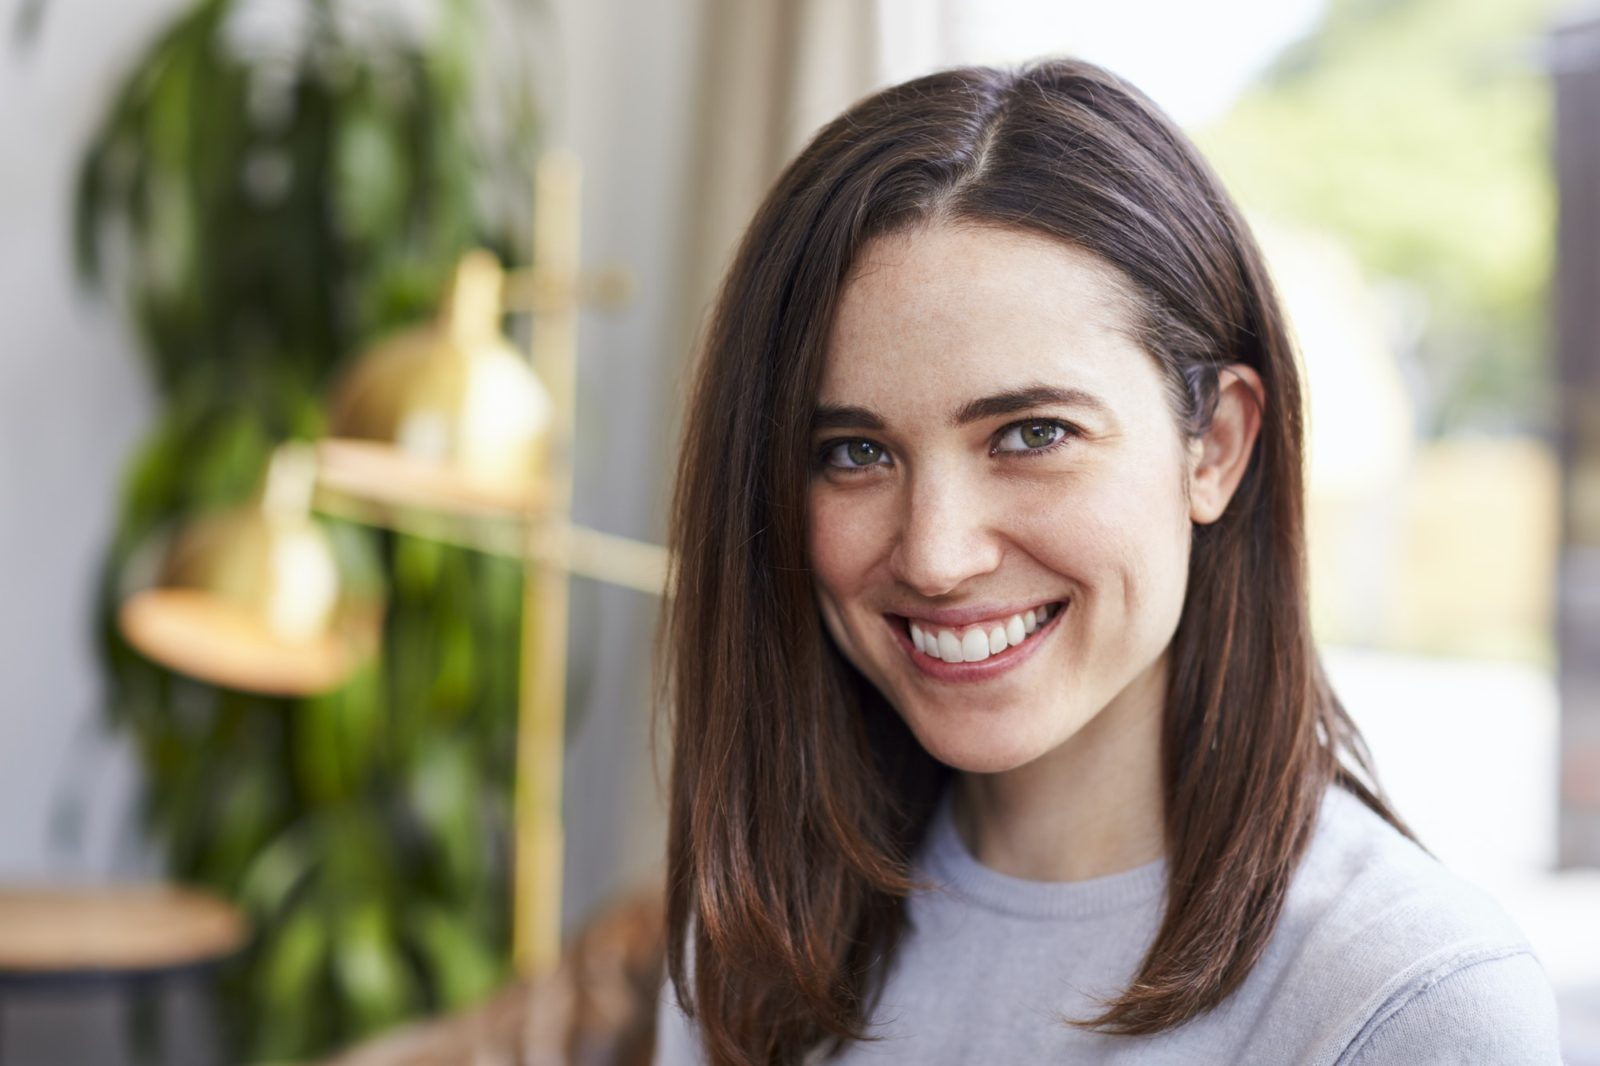 Young smiling white female business owner, portrait